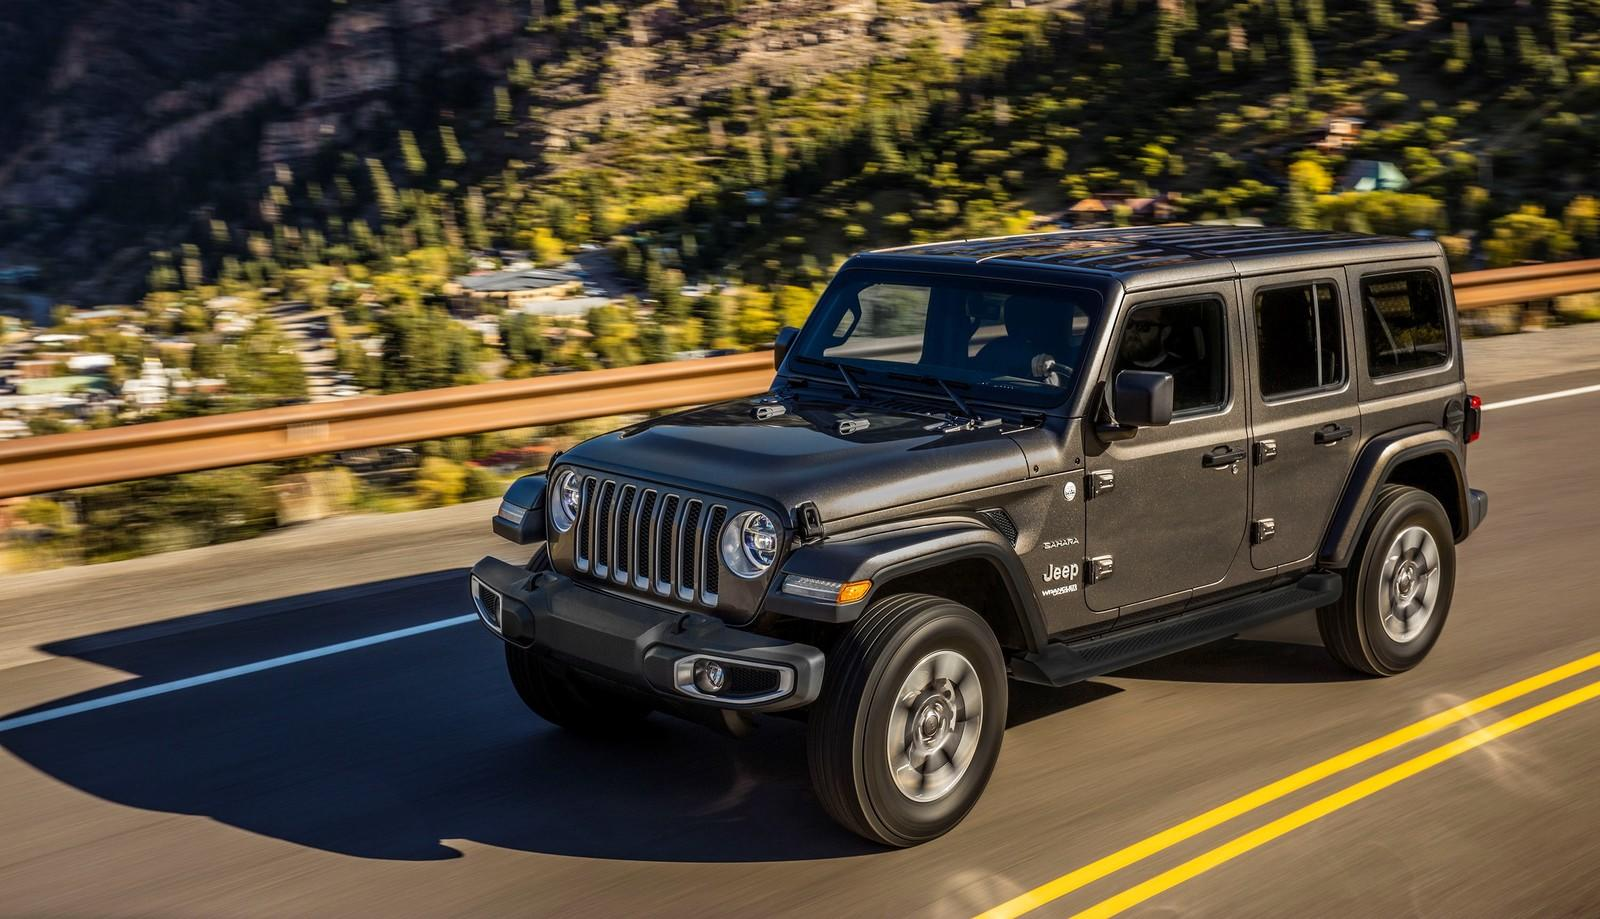 The 2018 Jeep Wrangler Unlimited Sahara Spied With 45 000